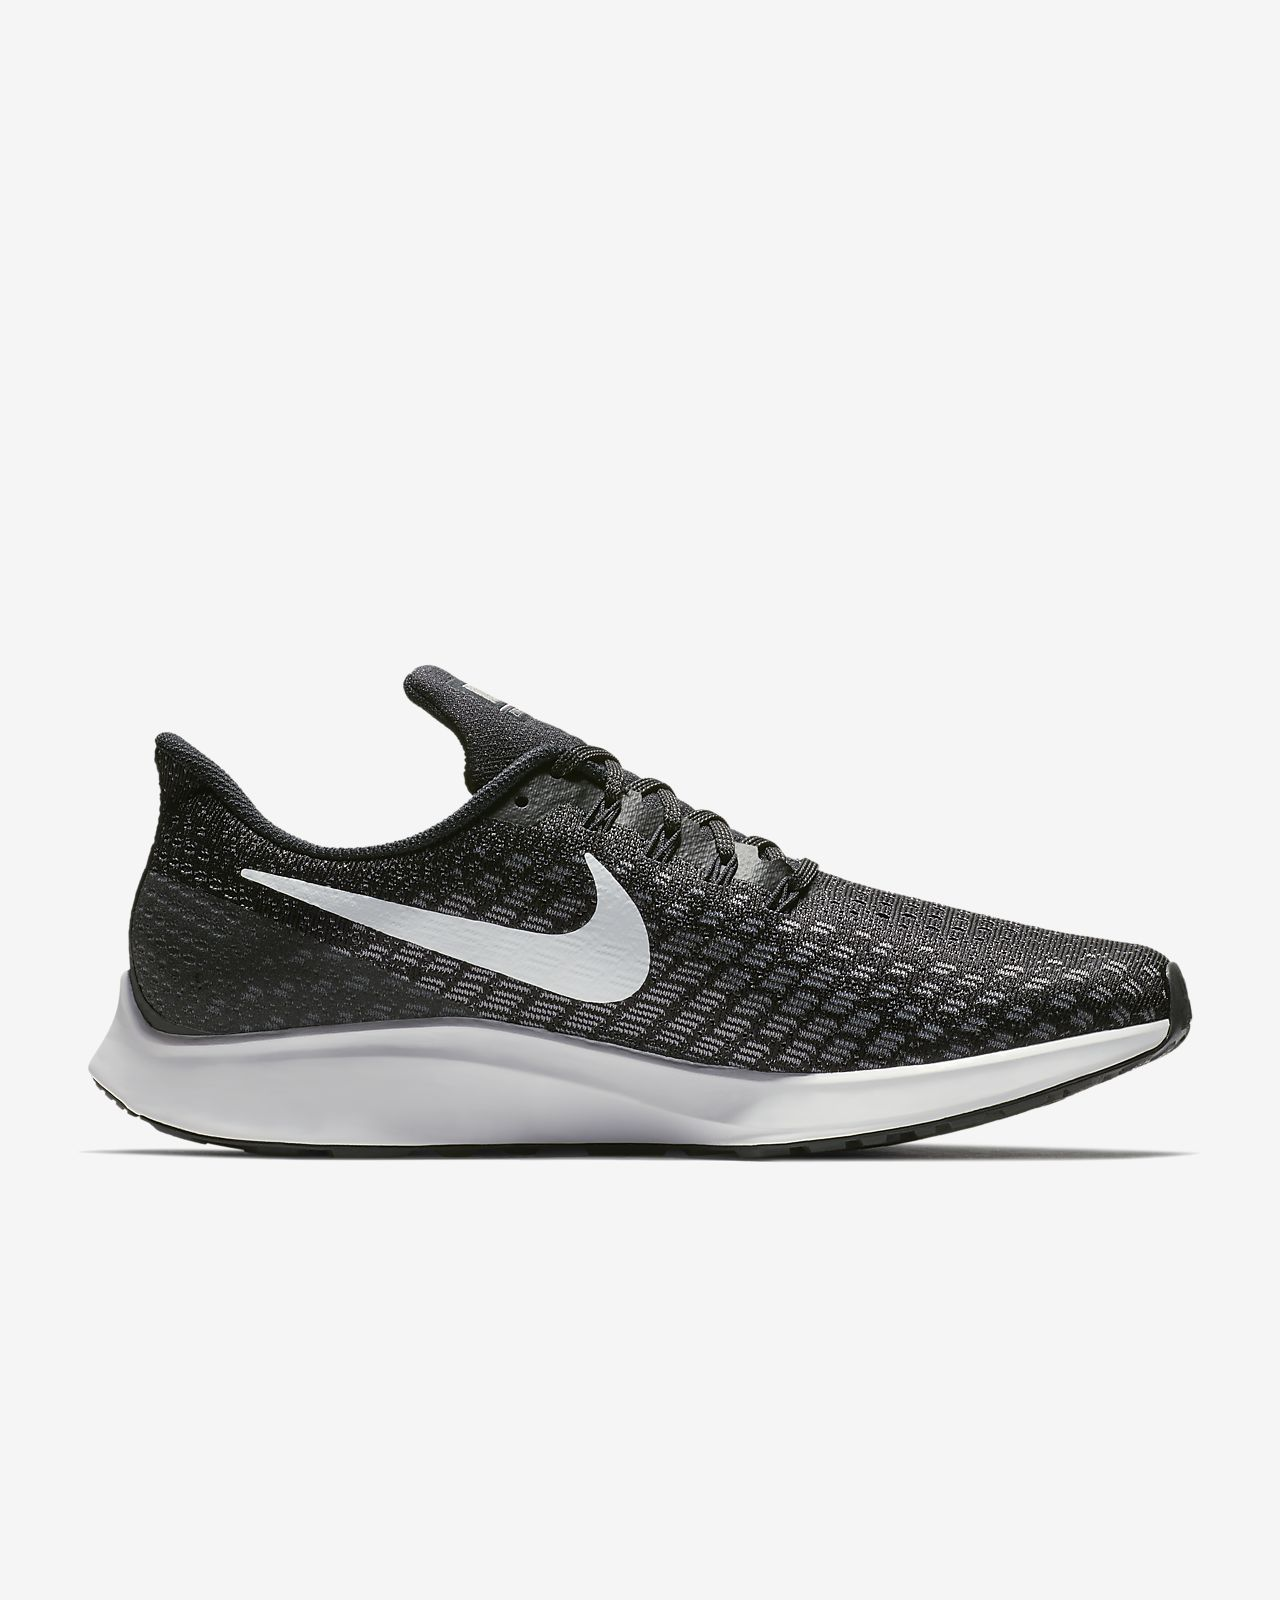 817da7b7bb88 Nike Air Zoom Pegasus 35 Men s Running Shoe. Nike.com GB